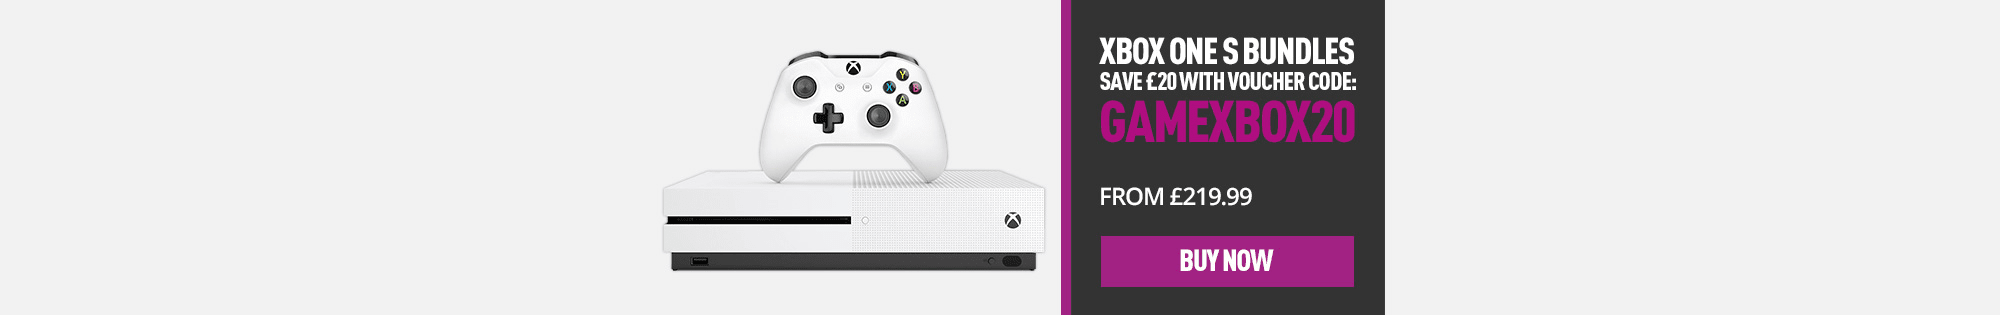 Xbox One S Console - Homepage Banner